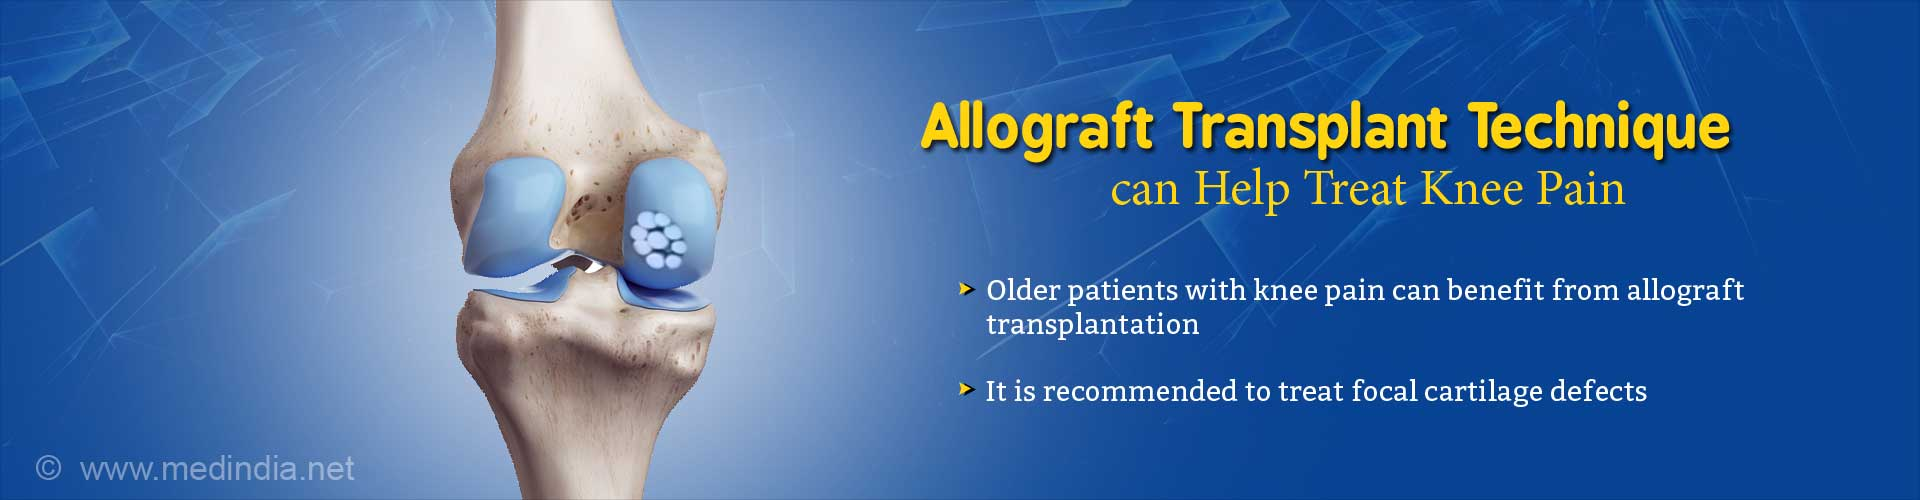 Promising Allograft Transplantation for Knee Pain Among Older Adults